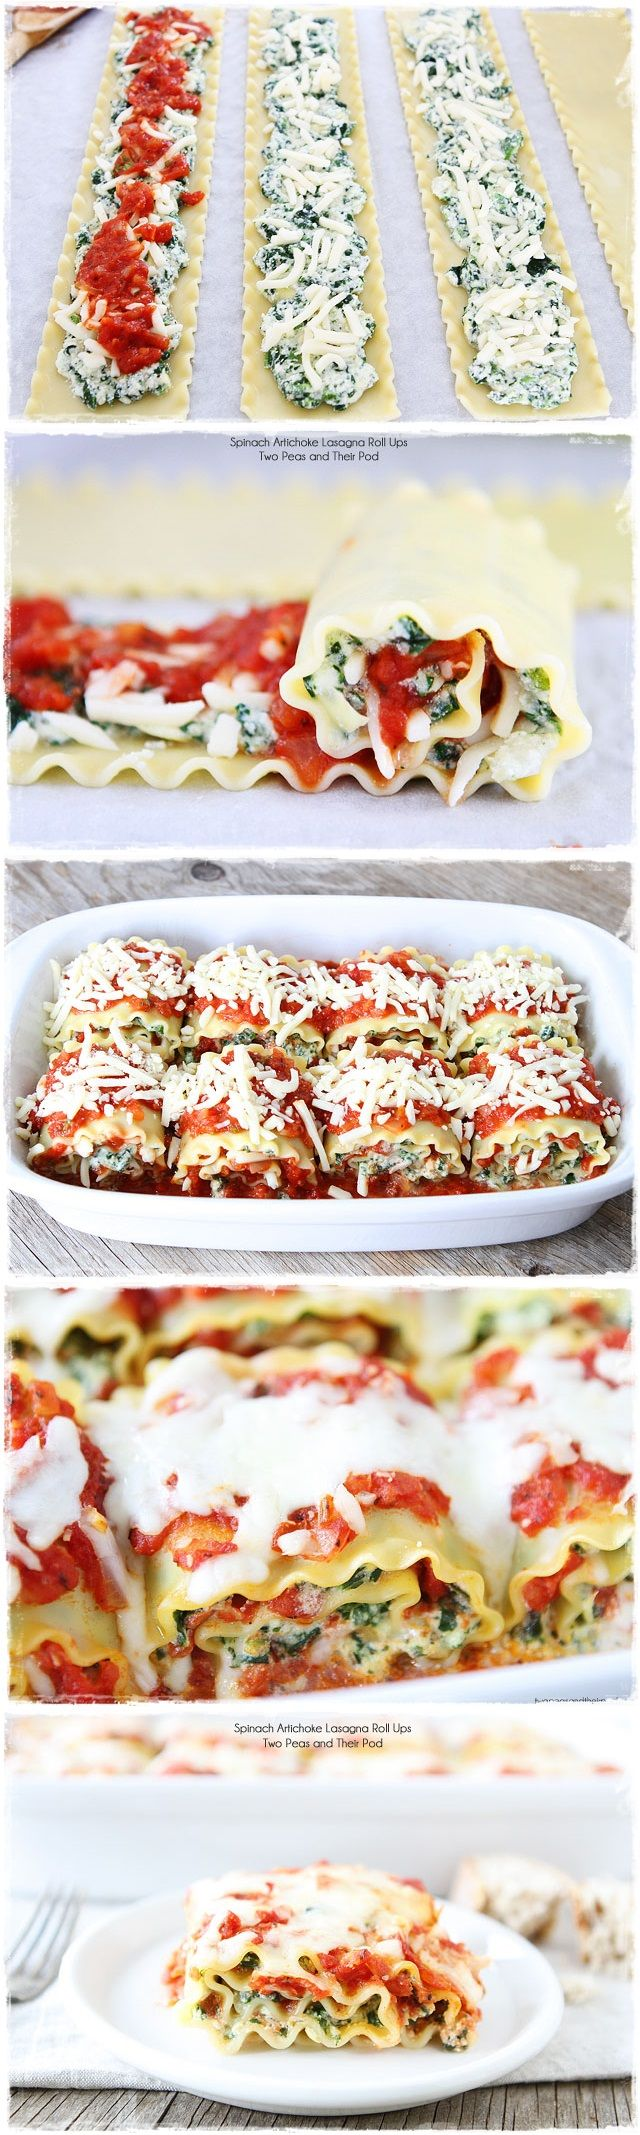 A wonderful idea for dinner! I made this tonight for dinner and my boyfriend, who by the way thinks that meat is mandatory in a dinner meal, was very very